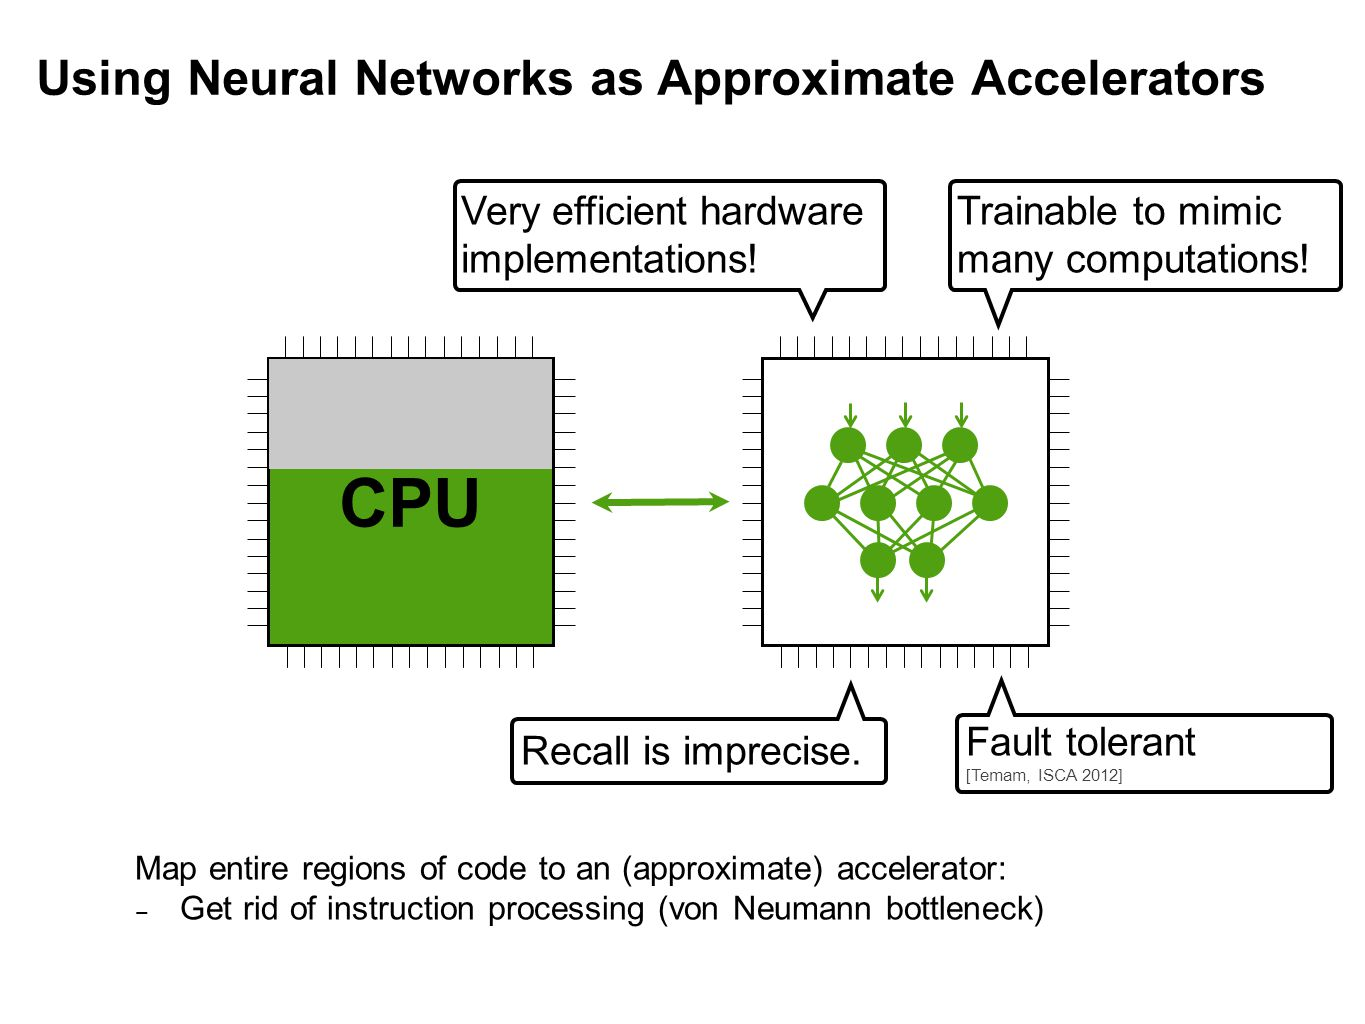 CPU Very efficient hardware implementations.Trainable to mimic many computations.